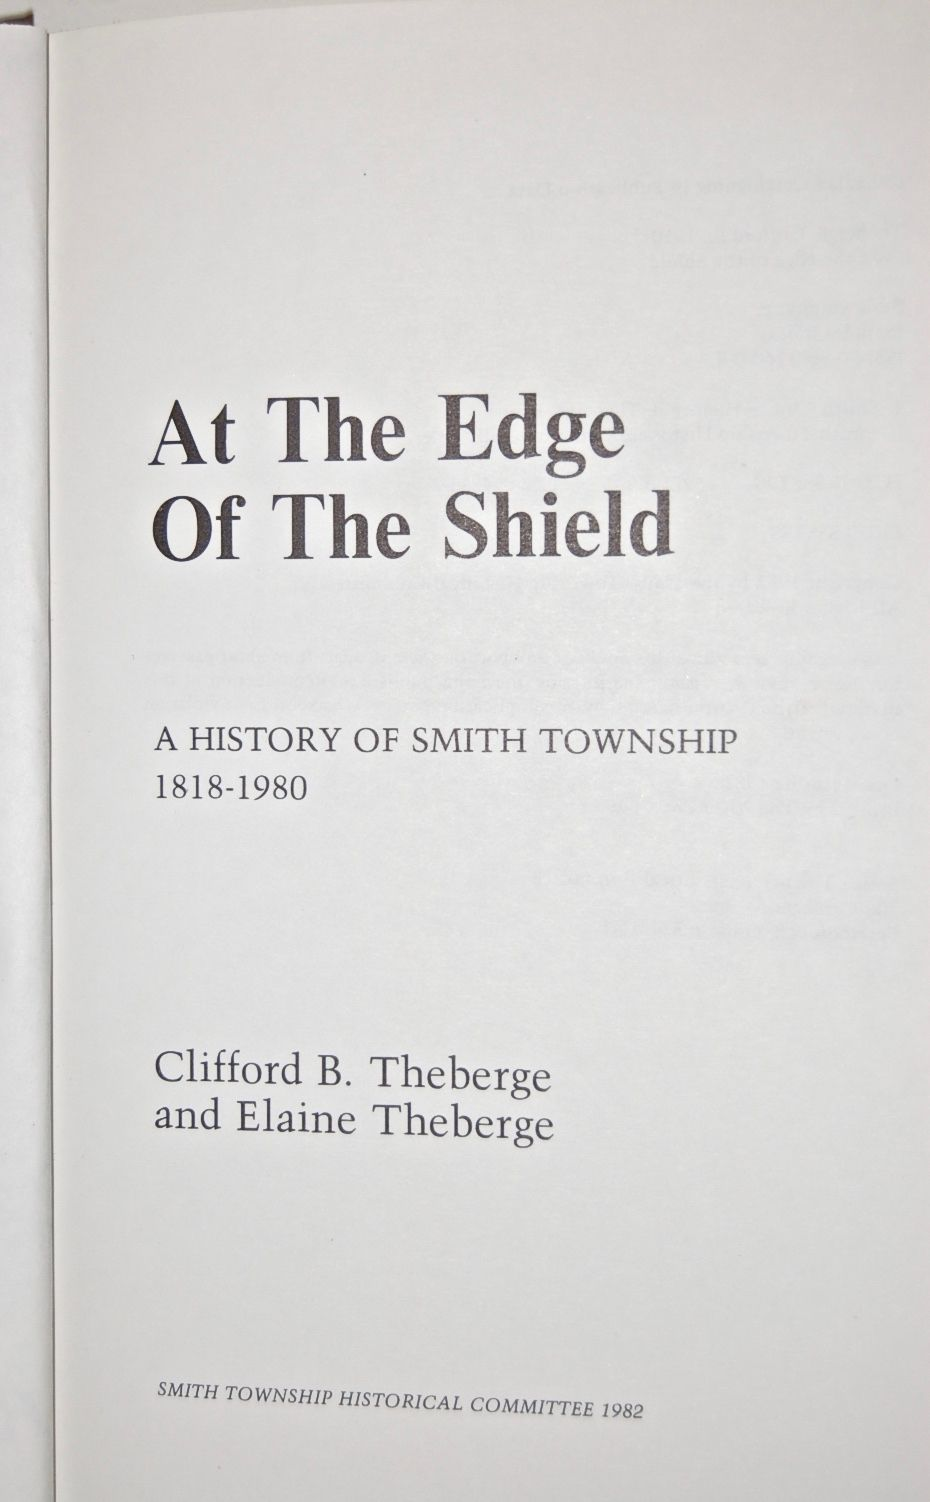 The Edge of the Shield, A History of the Township of Smith 1818-1980.